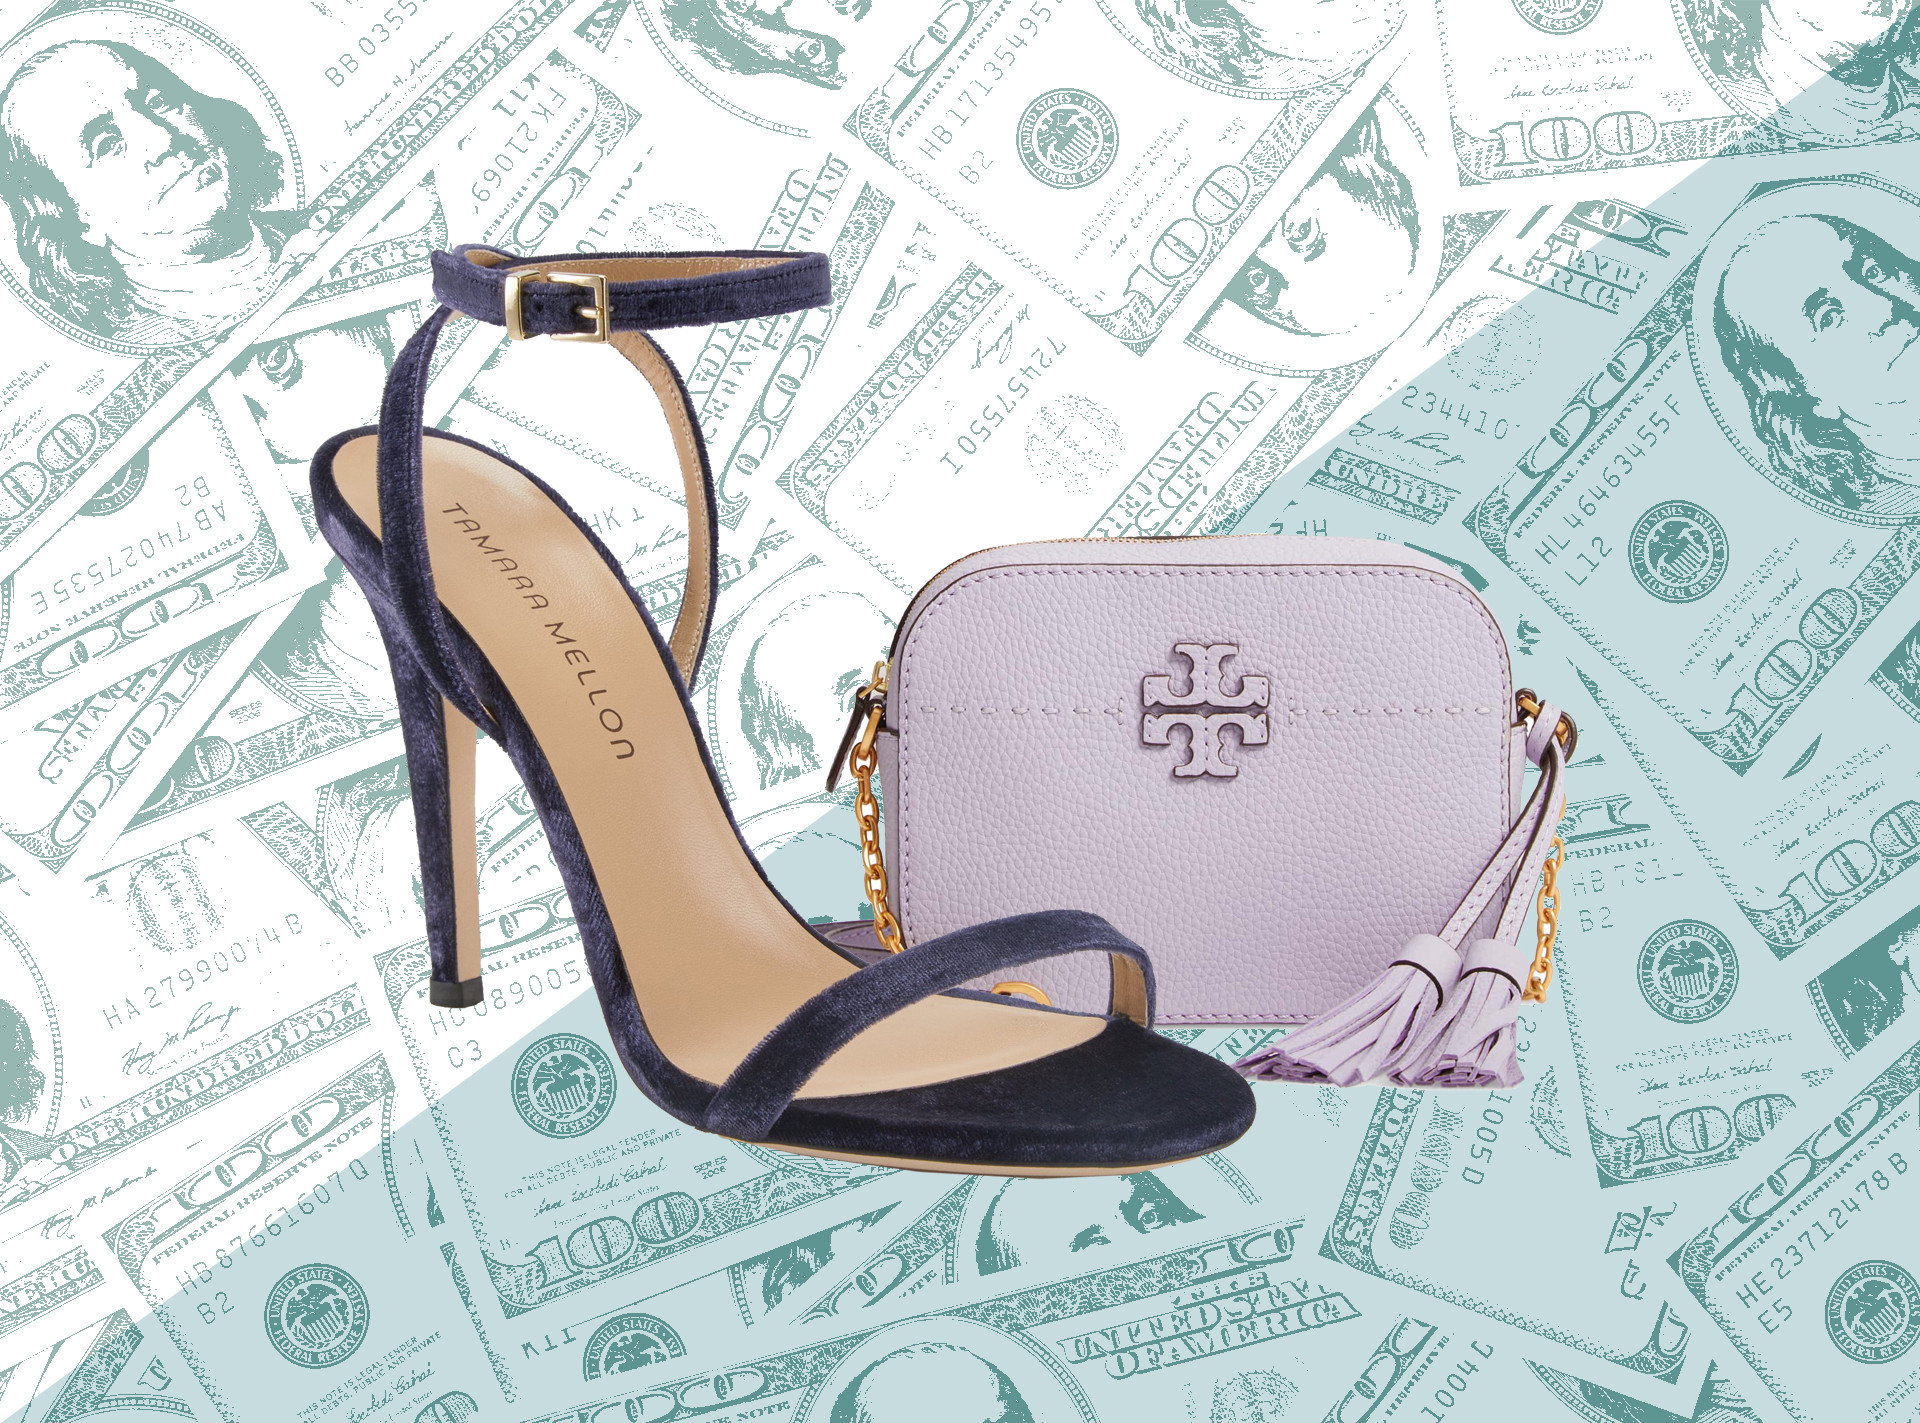 E-Comm: Splurge Your Tax Refund on These Designer Bags & Shoes